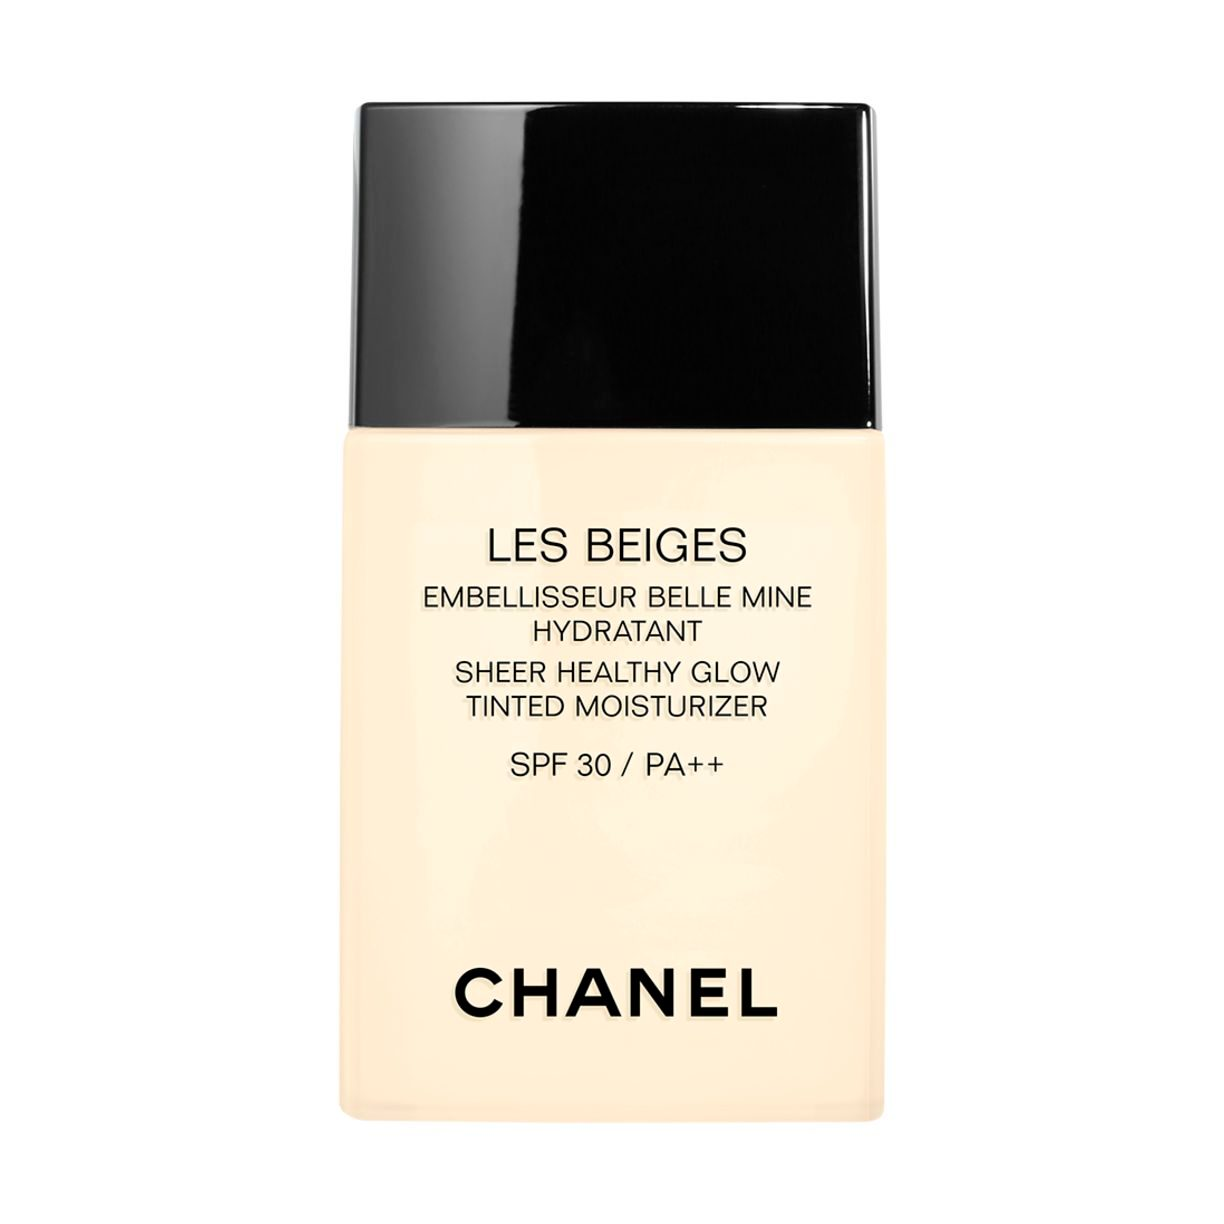 LES BEIGES SHEER HEALTHY GLOW TINTED MOISTURISER SPF 30 / PA++ LIGHT 30ML